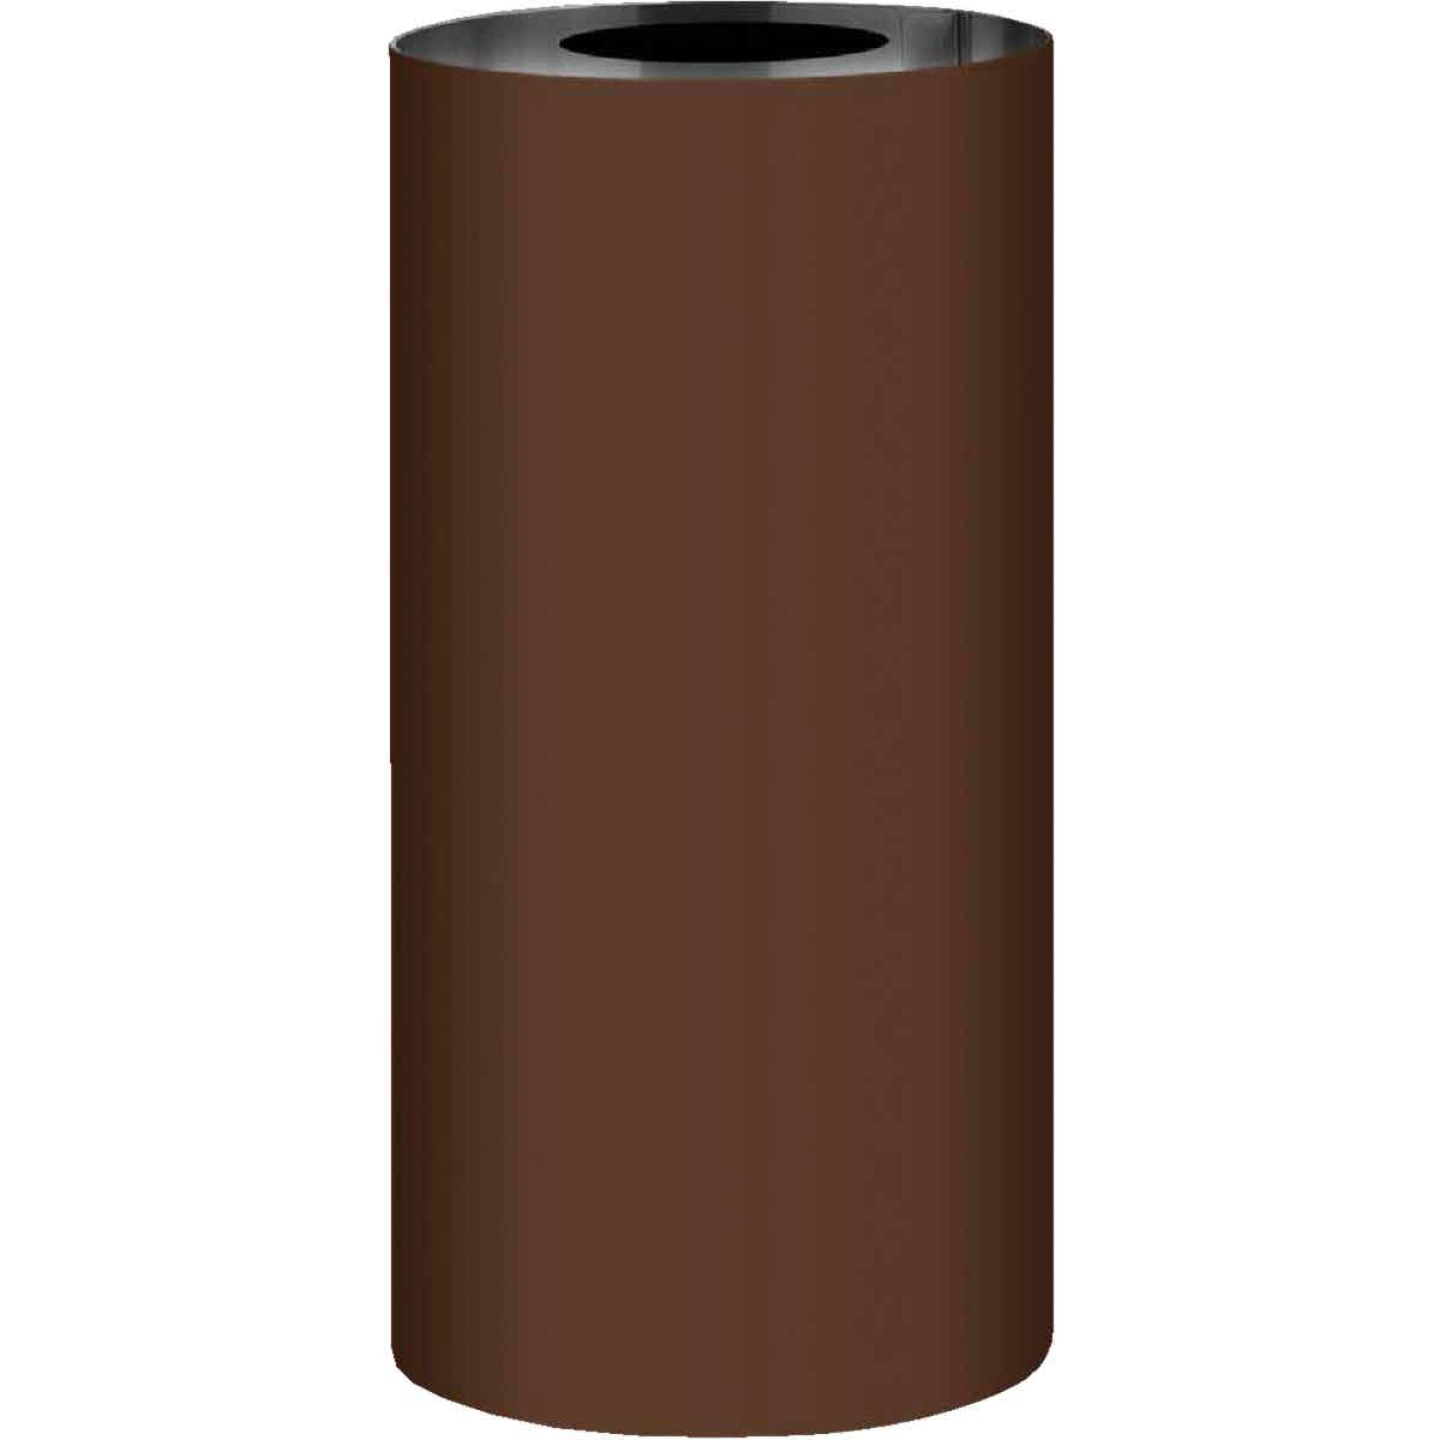 NorWesco 10 In. x 50 Ft. Brown Galvanized Roll Valley Flashing Image 1